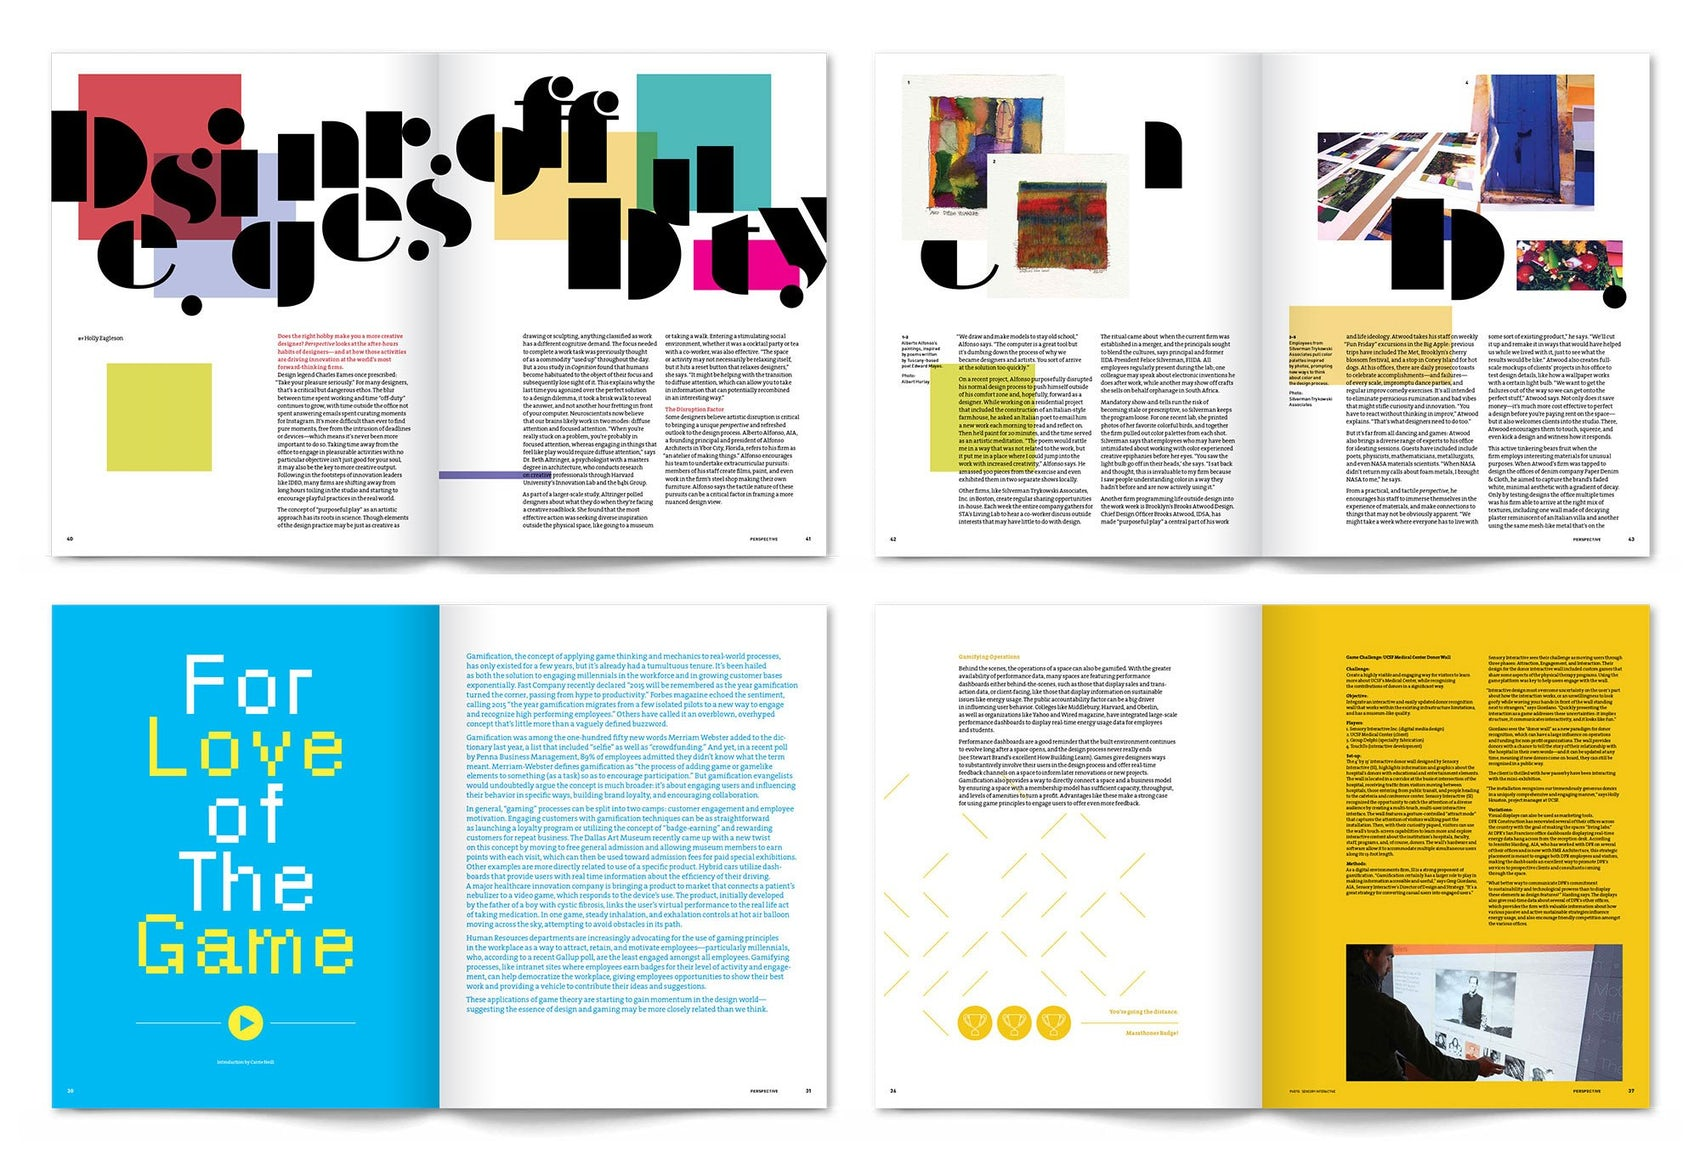 IIDA perspective SS 2015 Book Page Template 150616 TK 6 2